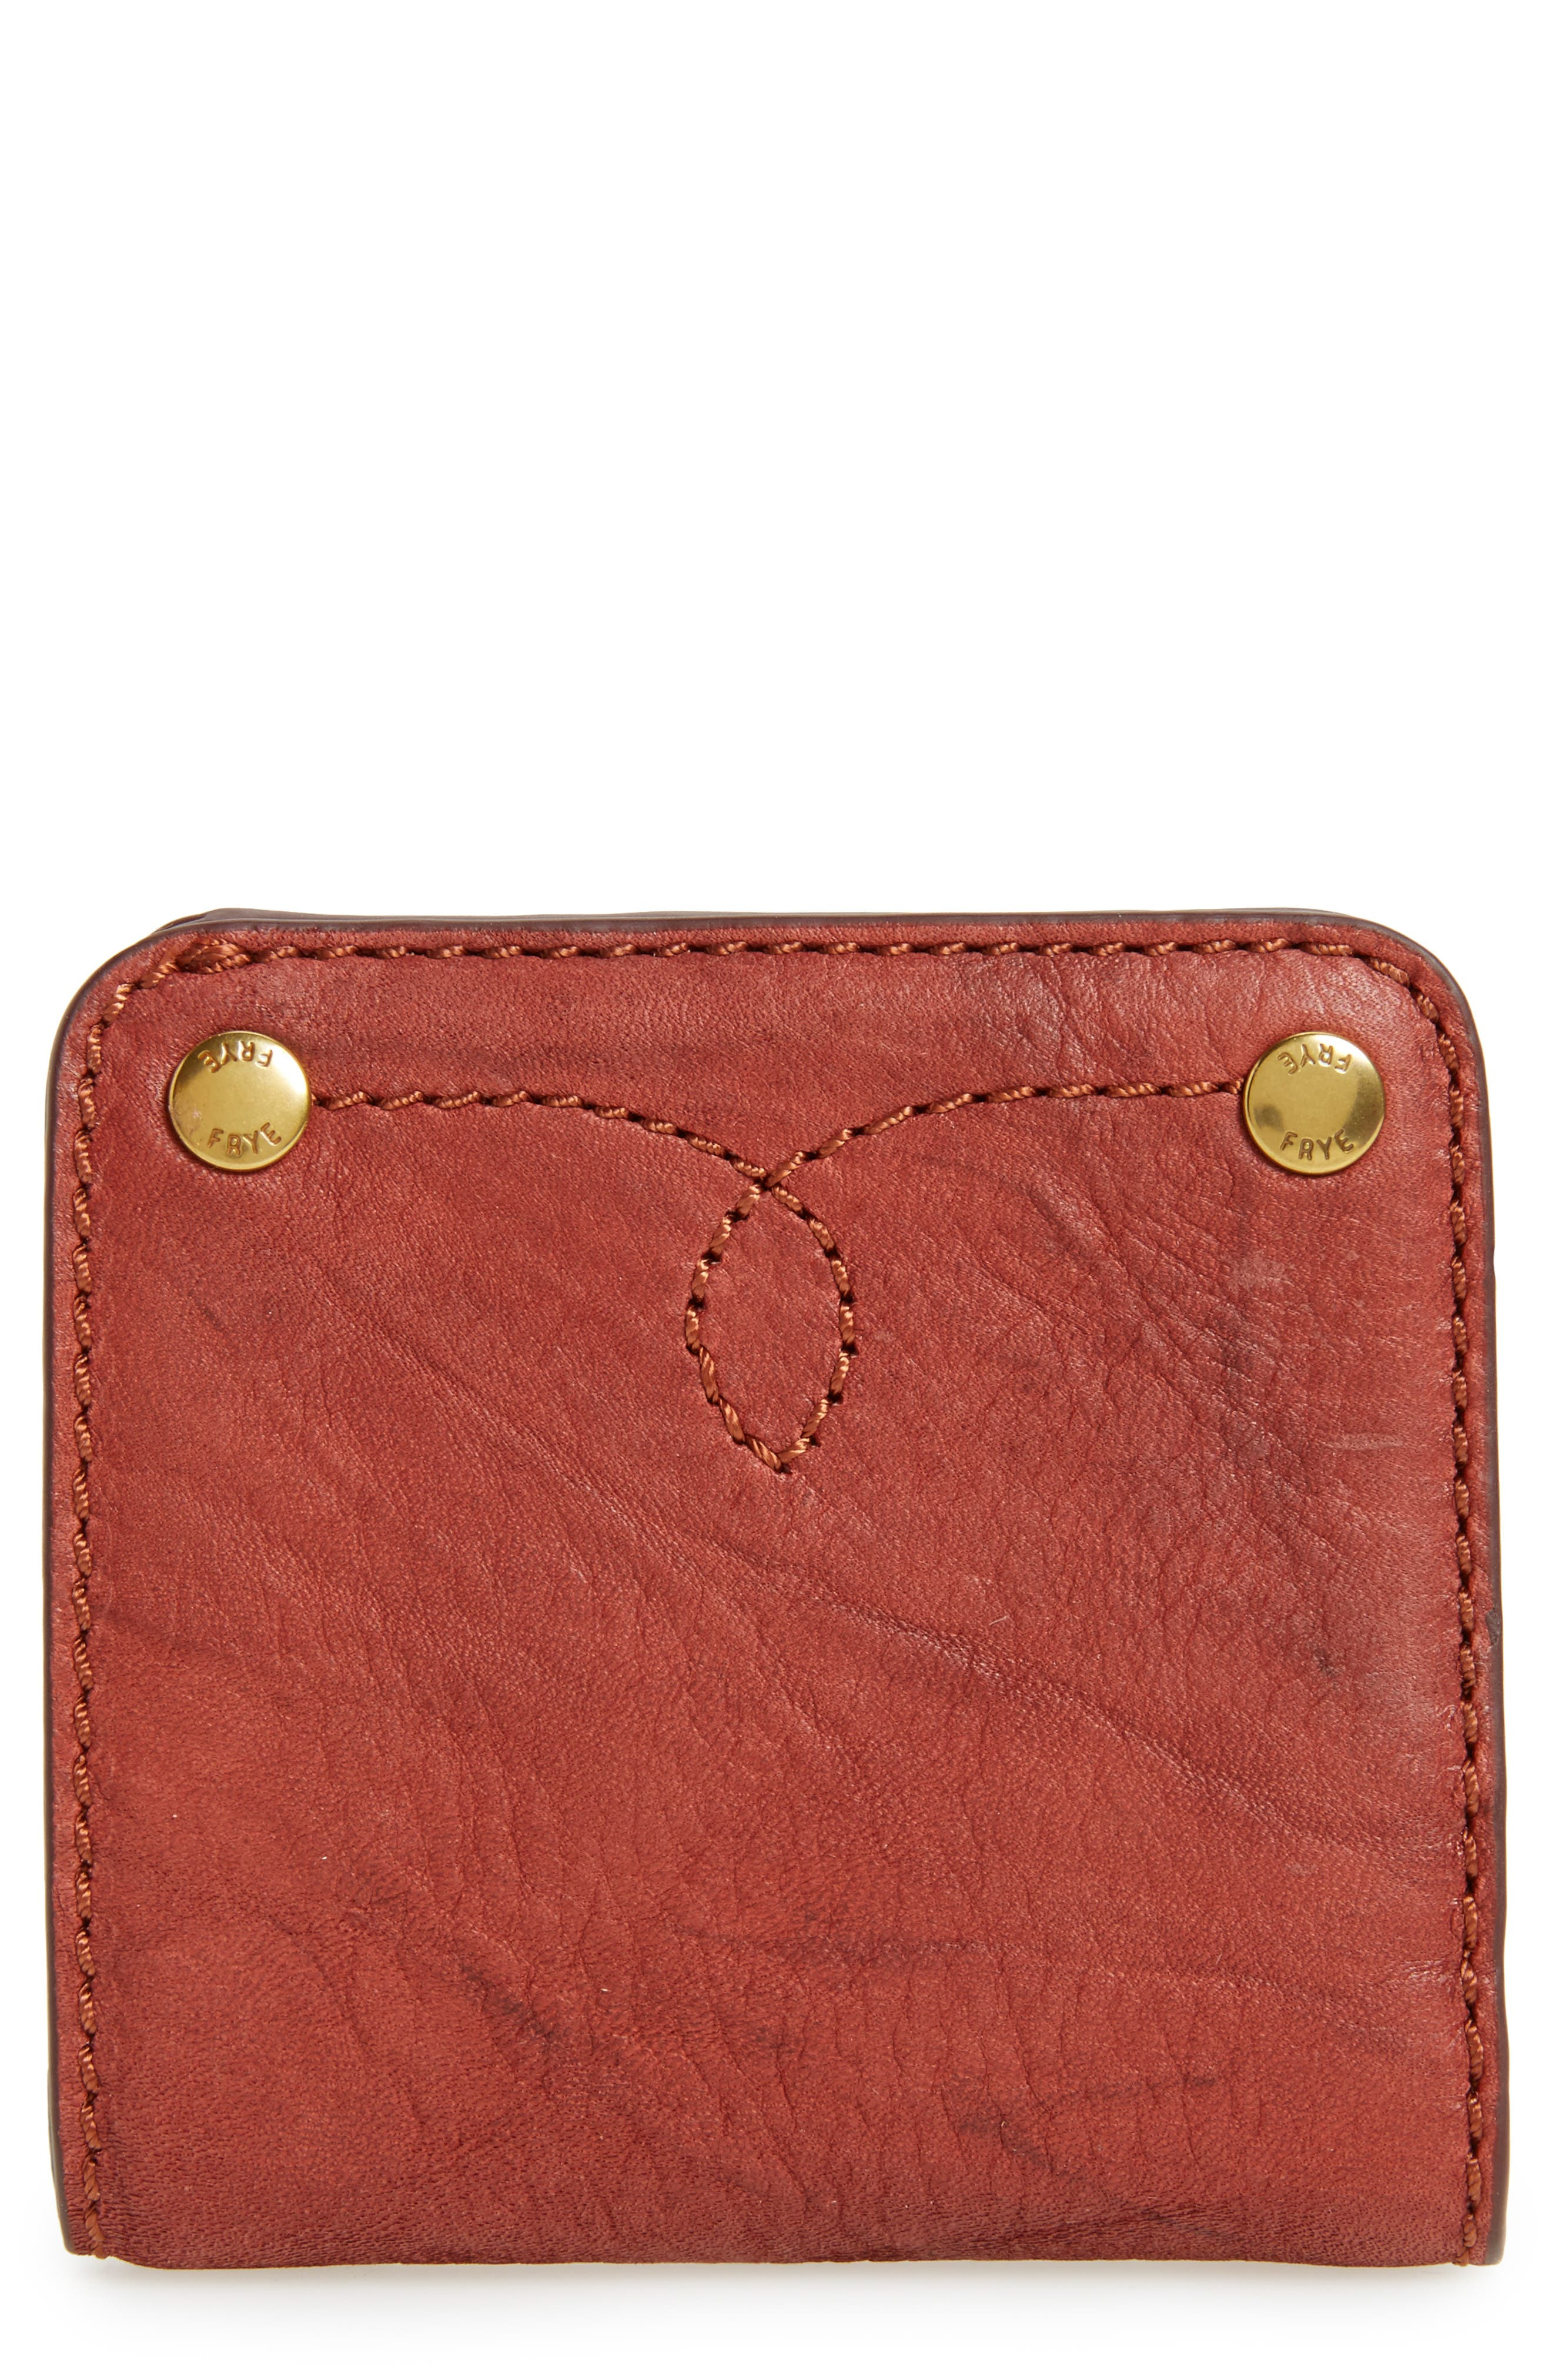 Alternate Image 1 Selected - Frye Small Campus Rivet Leather Wallet